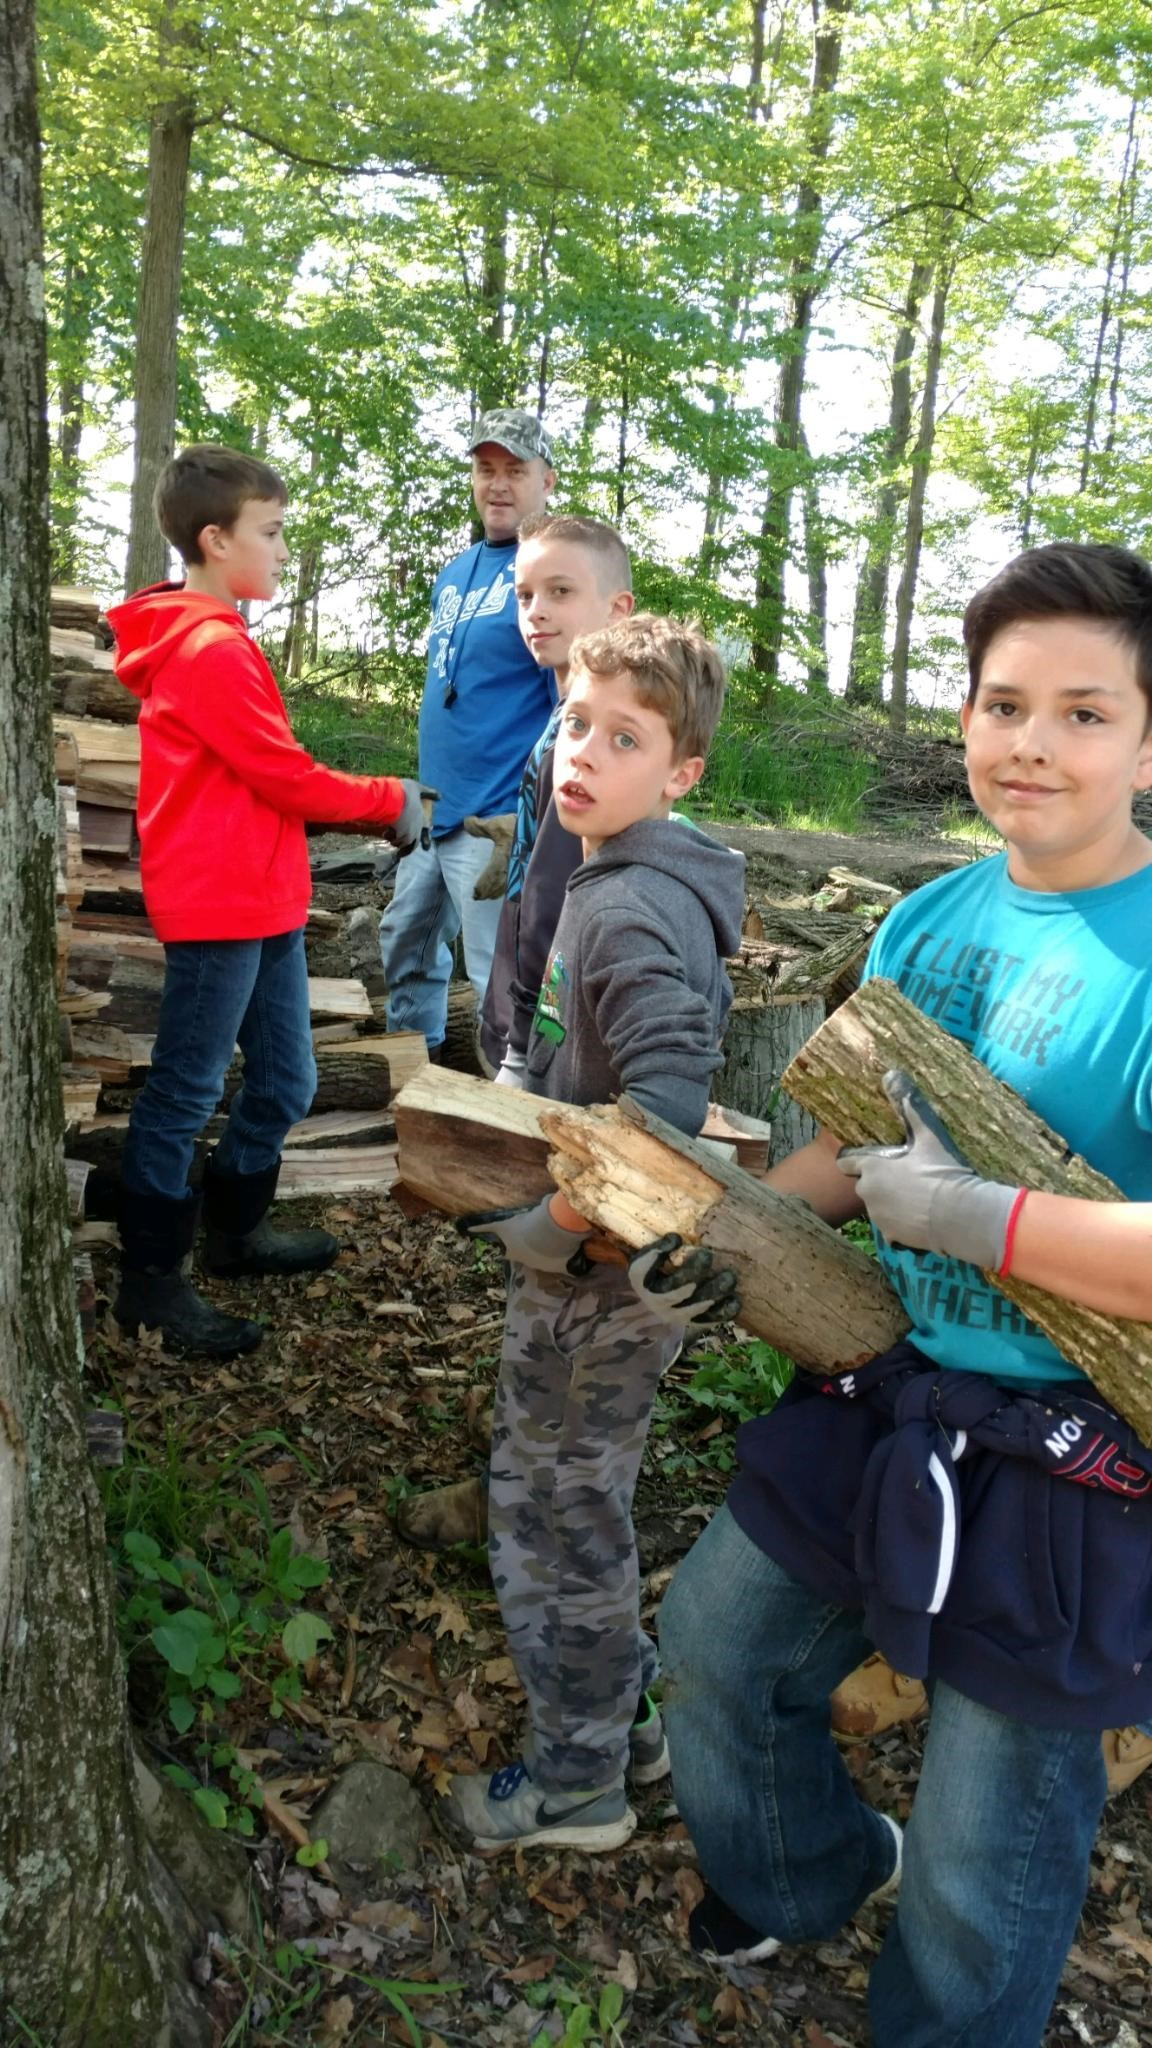 5th grade assembly line to move wood